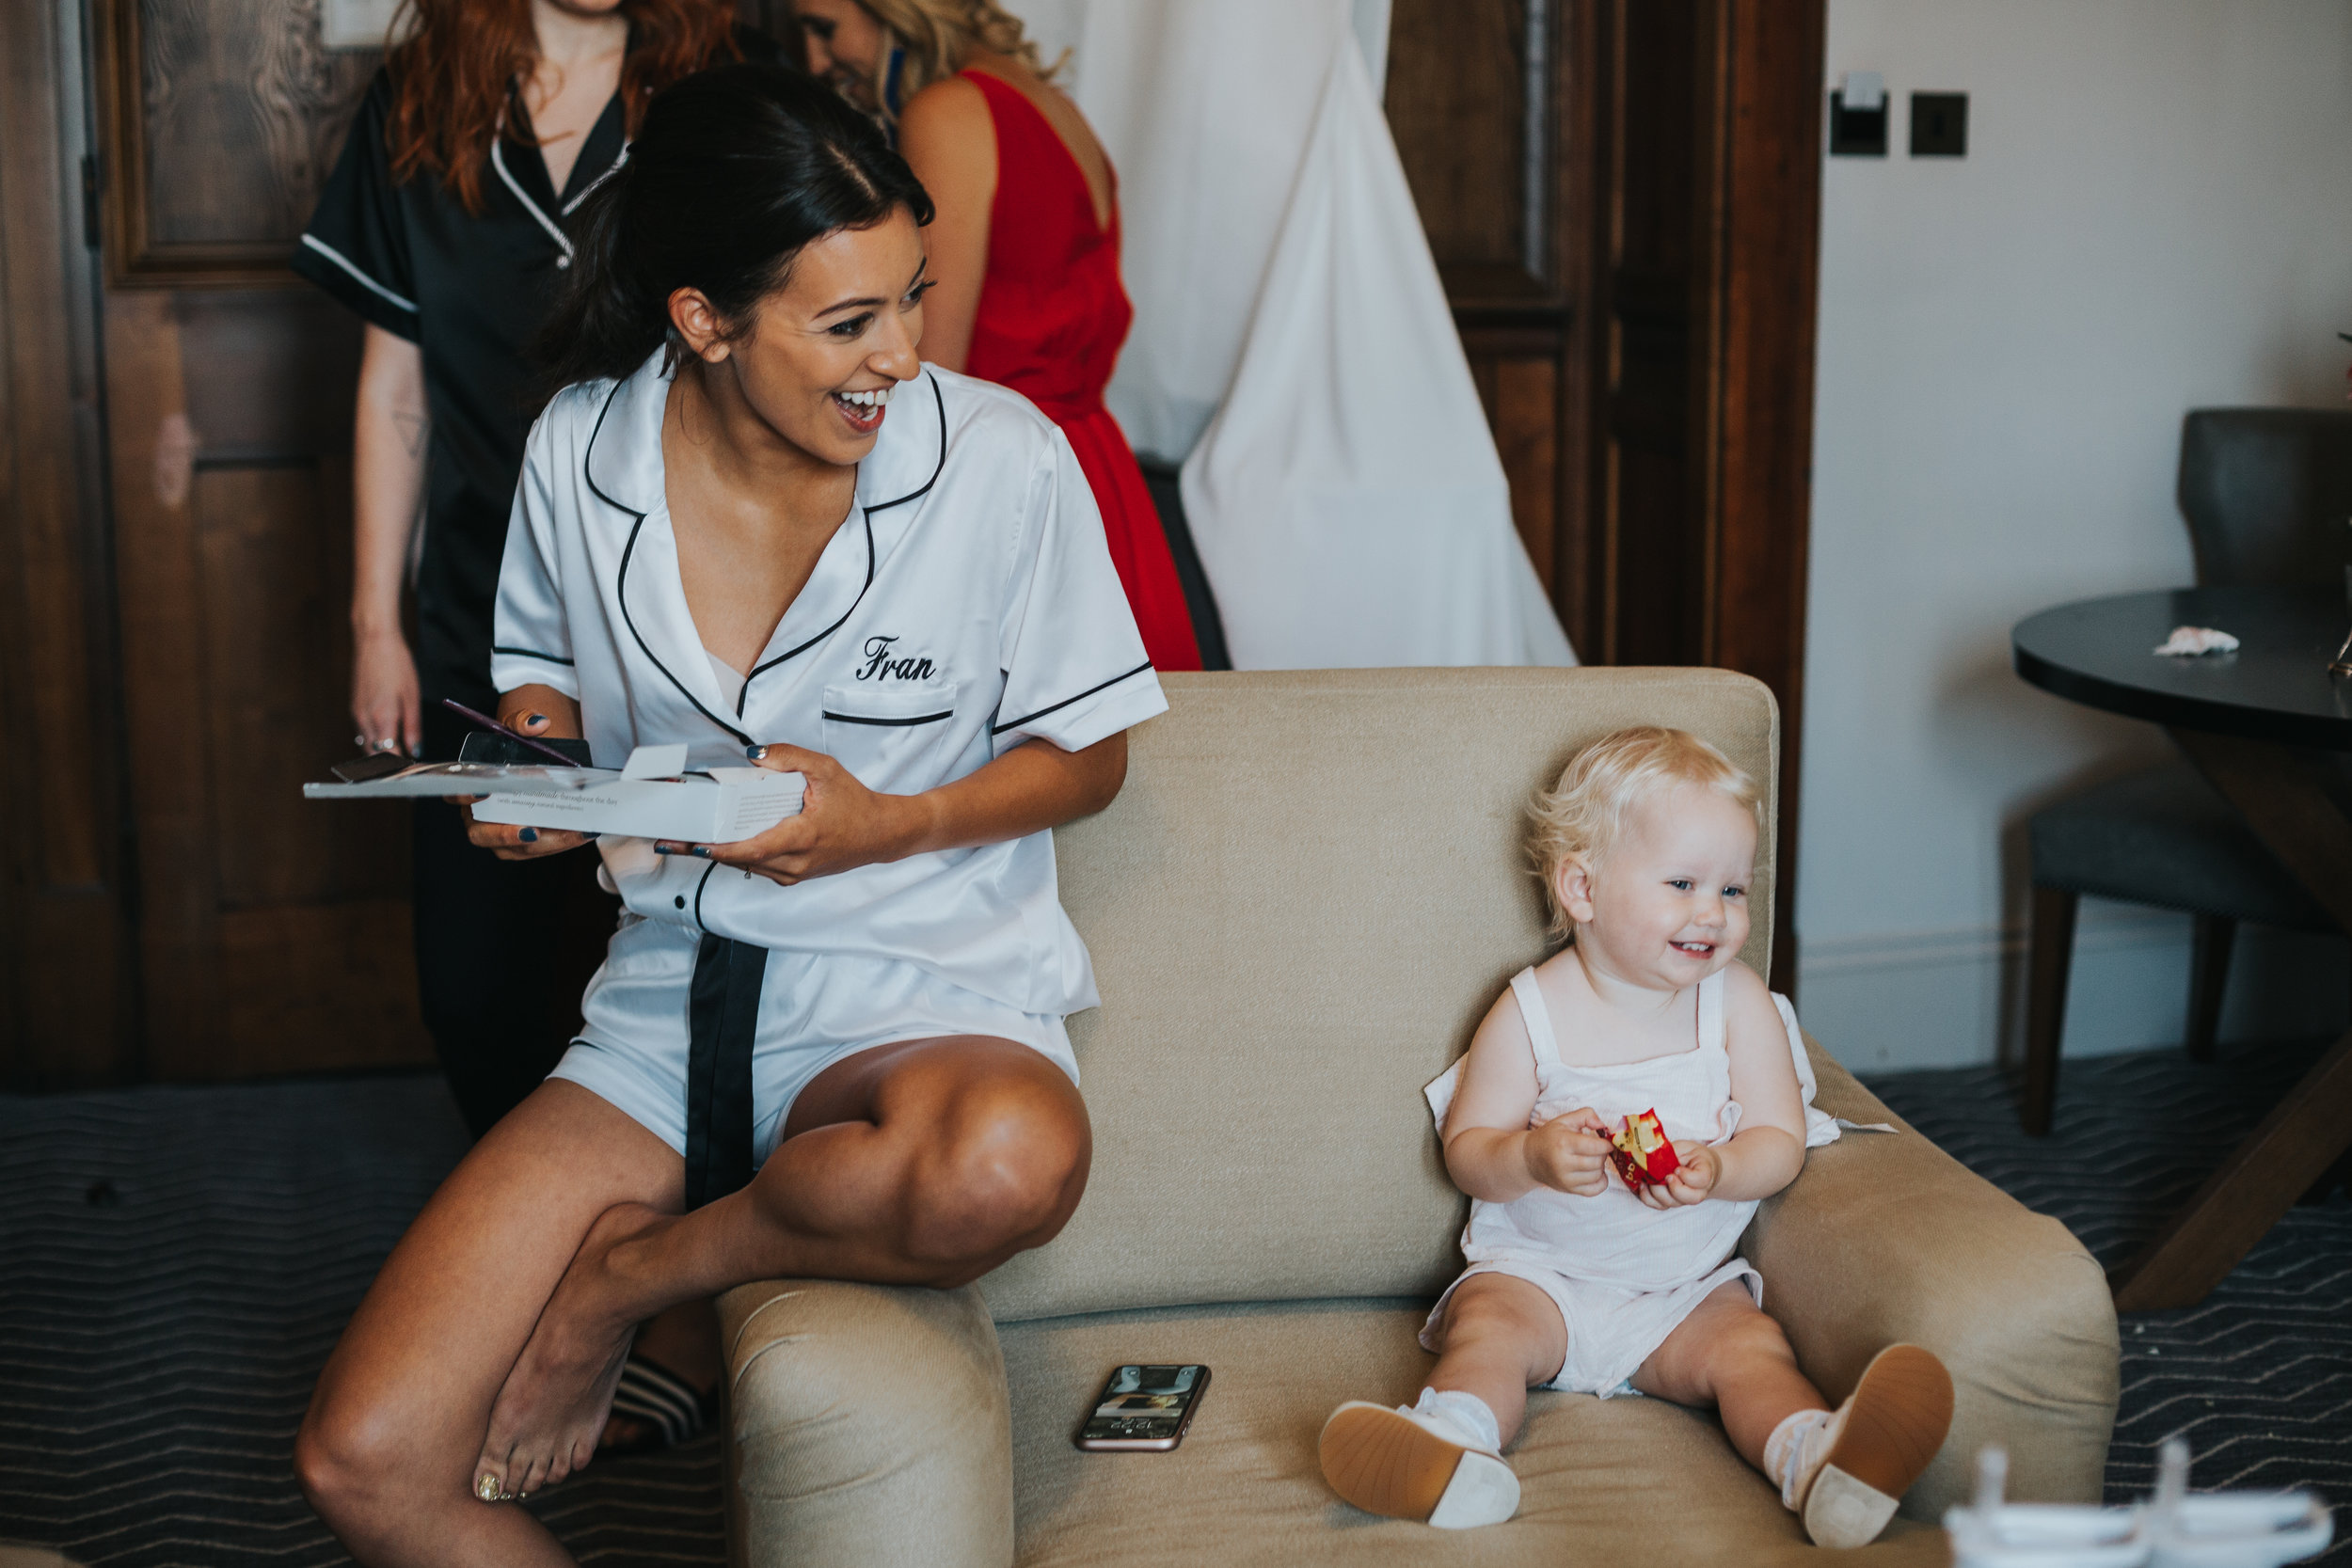 Bride sits with her niece and laughs.